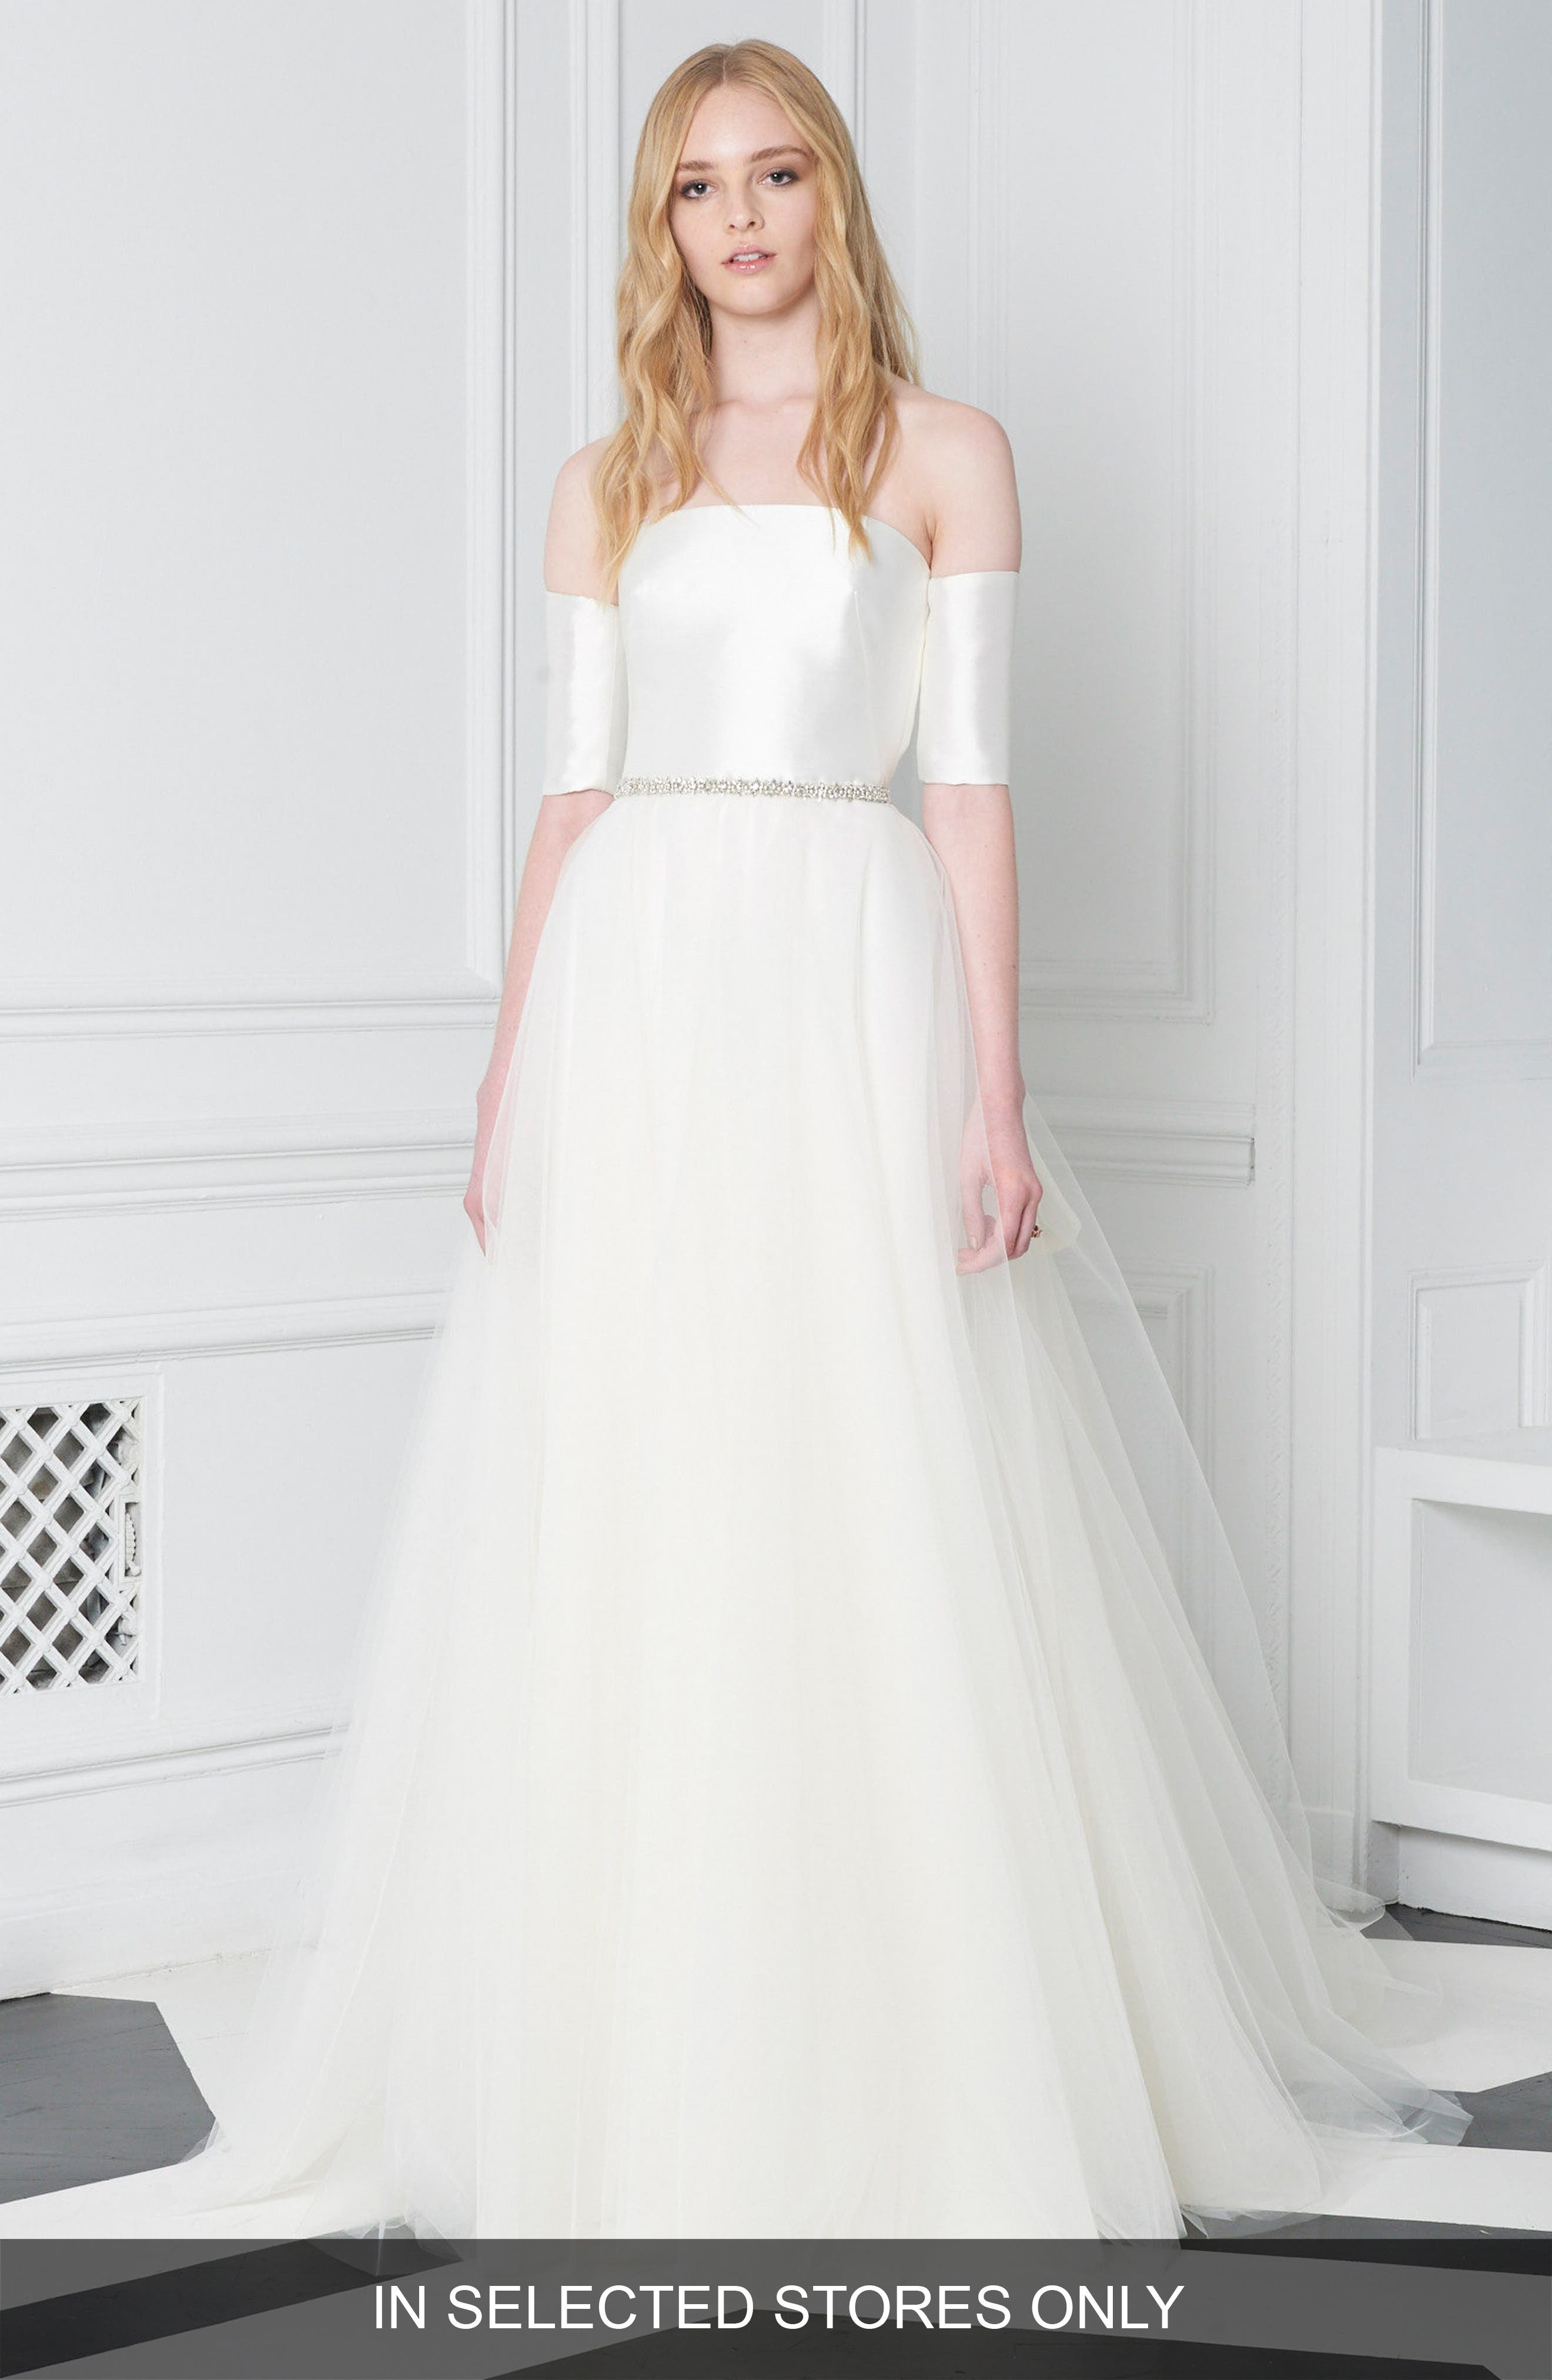 Main Image - BLISS Monique Lhuillier Off the Shoulder Crystal Waist Ballgown